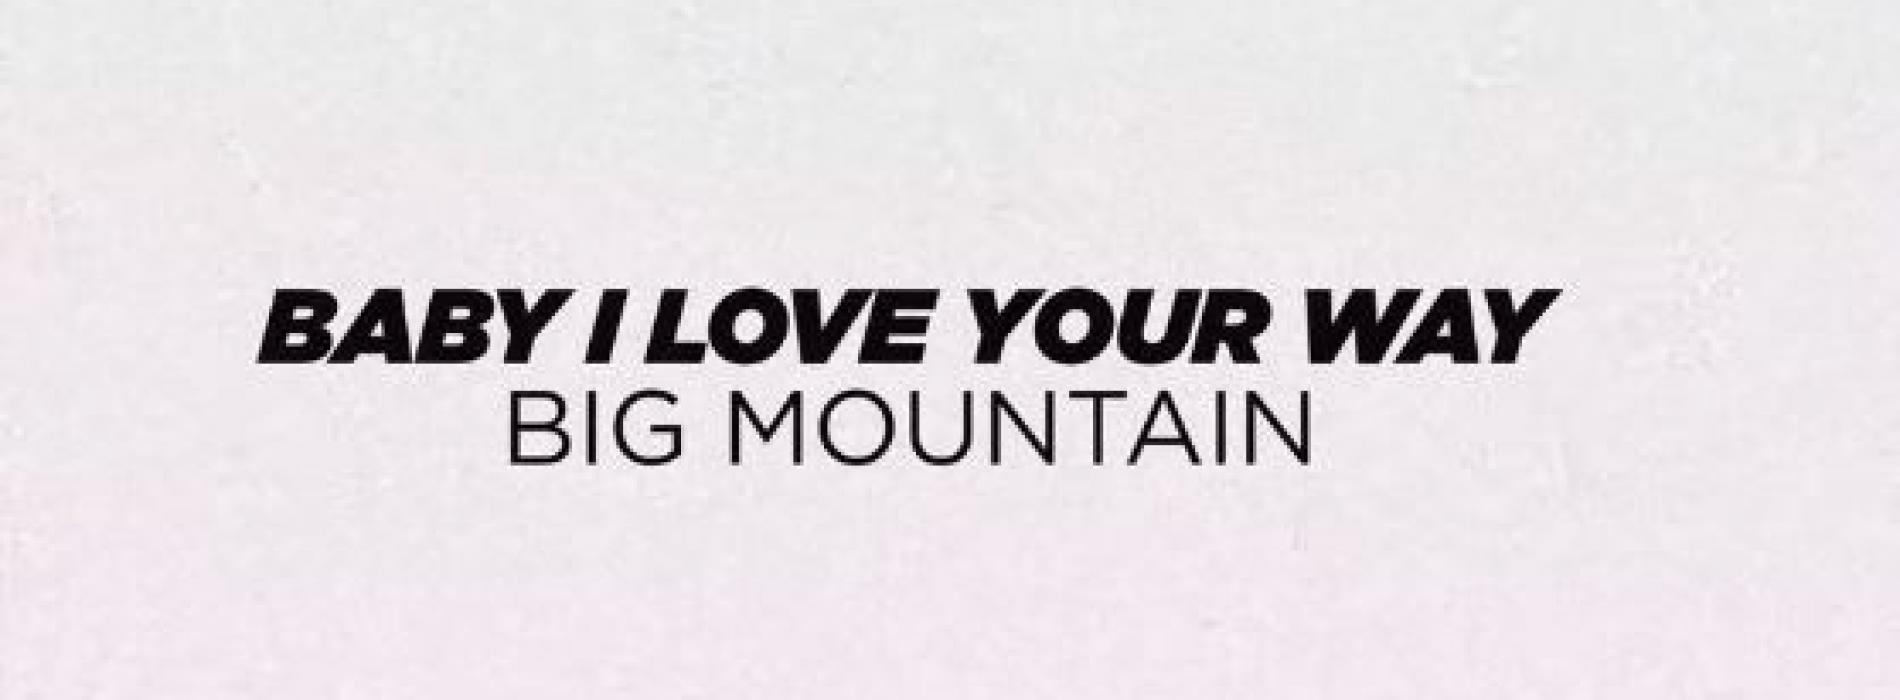 New Music : Big Mountain – Baby, I Love Your Way (Cover by Minesh)